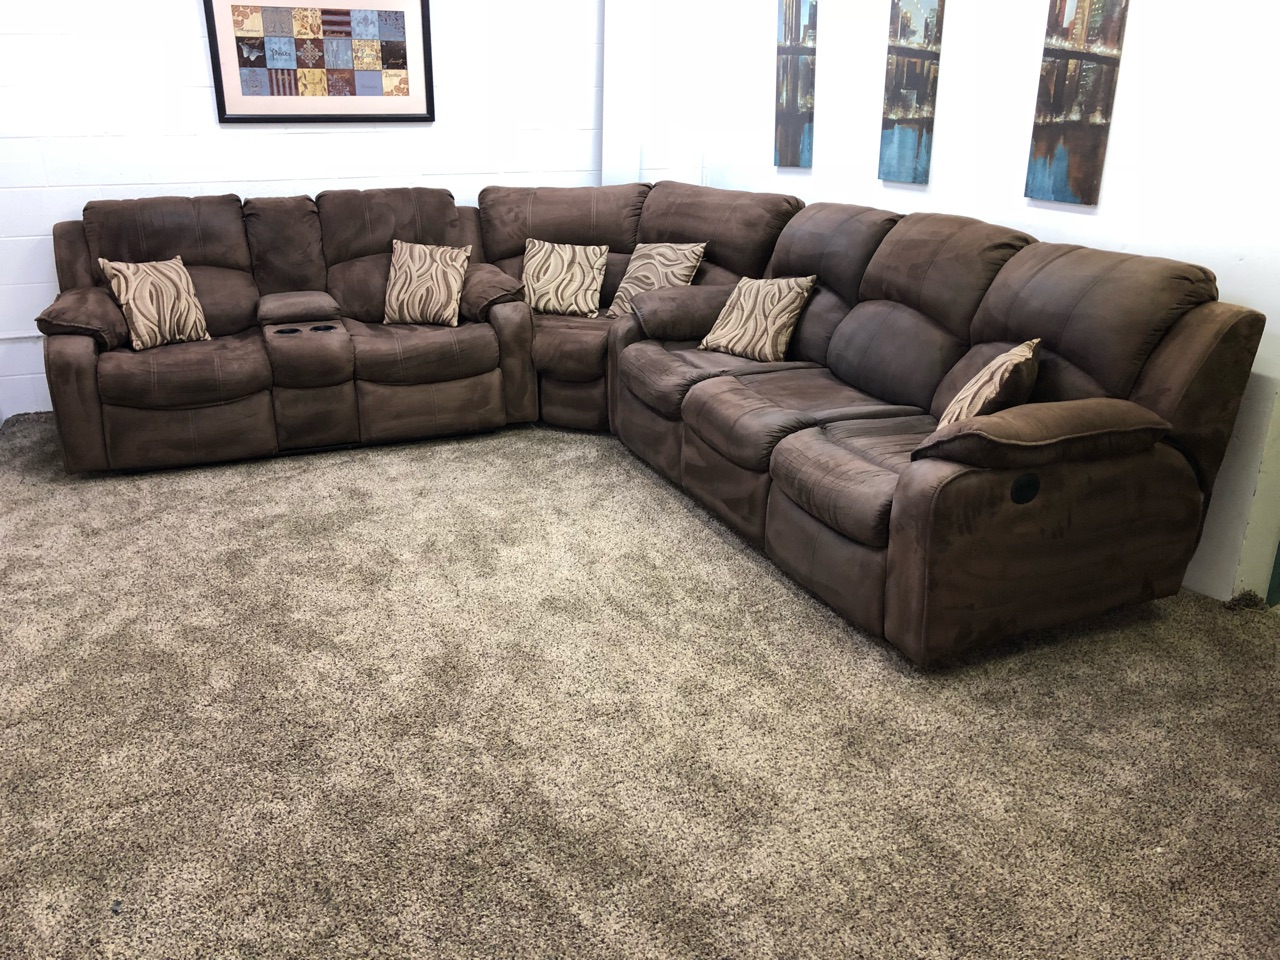 Sofa Set Action Reserved 1260 3 Piece Dark Brown Microfiber Power Reclining Sectional Sofa Set With Cup Holders And Storage